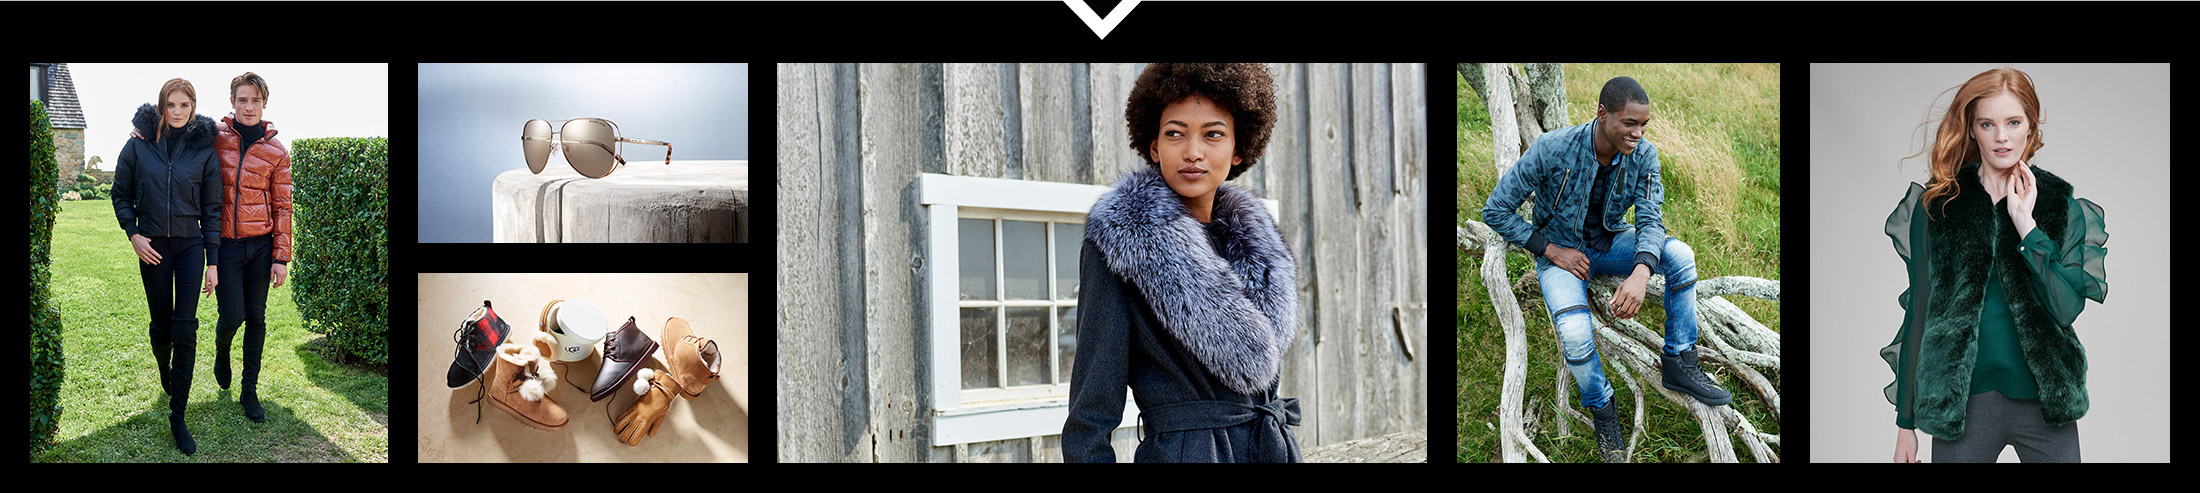 macys presents: the edit, from luxe leather to fabulous fluff-when the chill hits the air, we have got you covered.